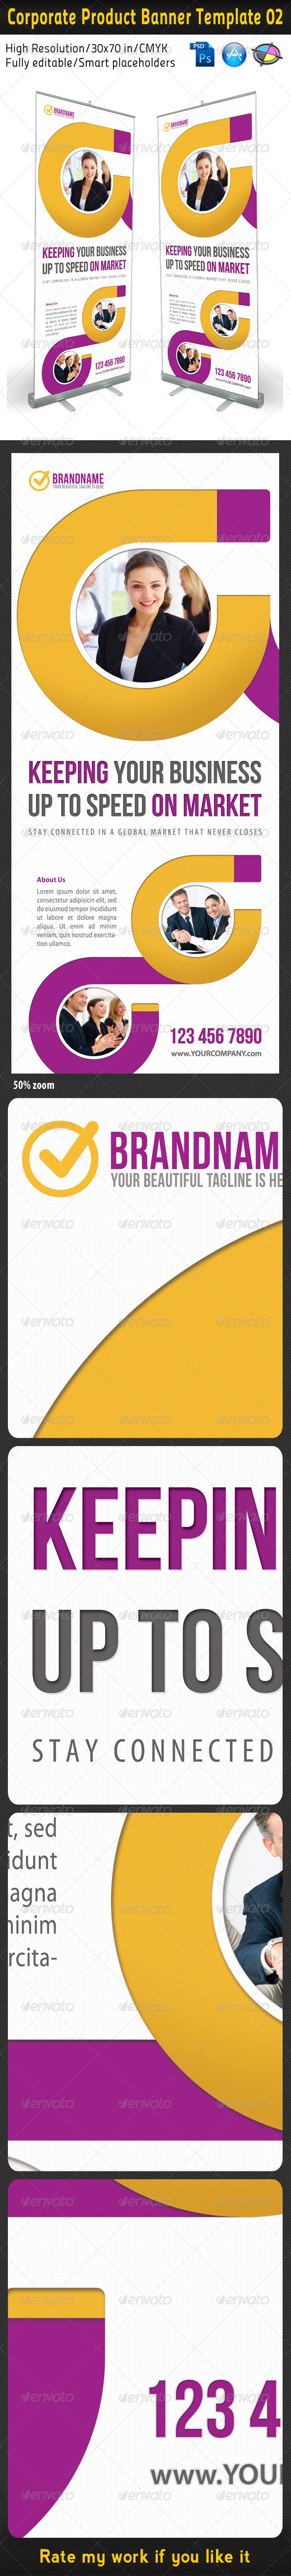 Corporate Product Banner Template 02 - Signage Print Templates